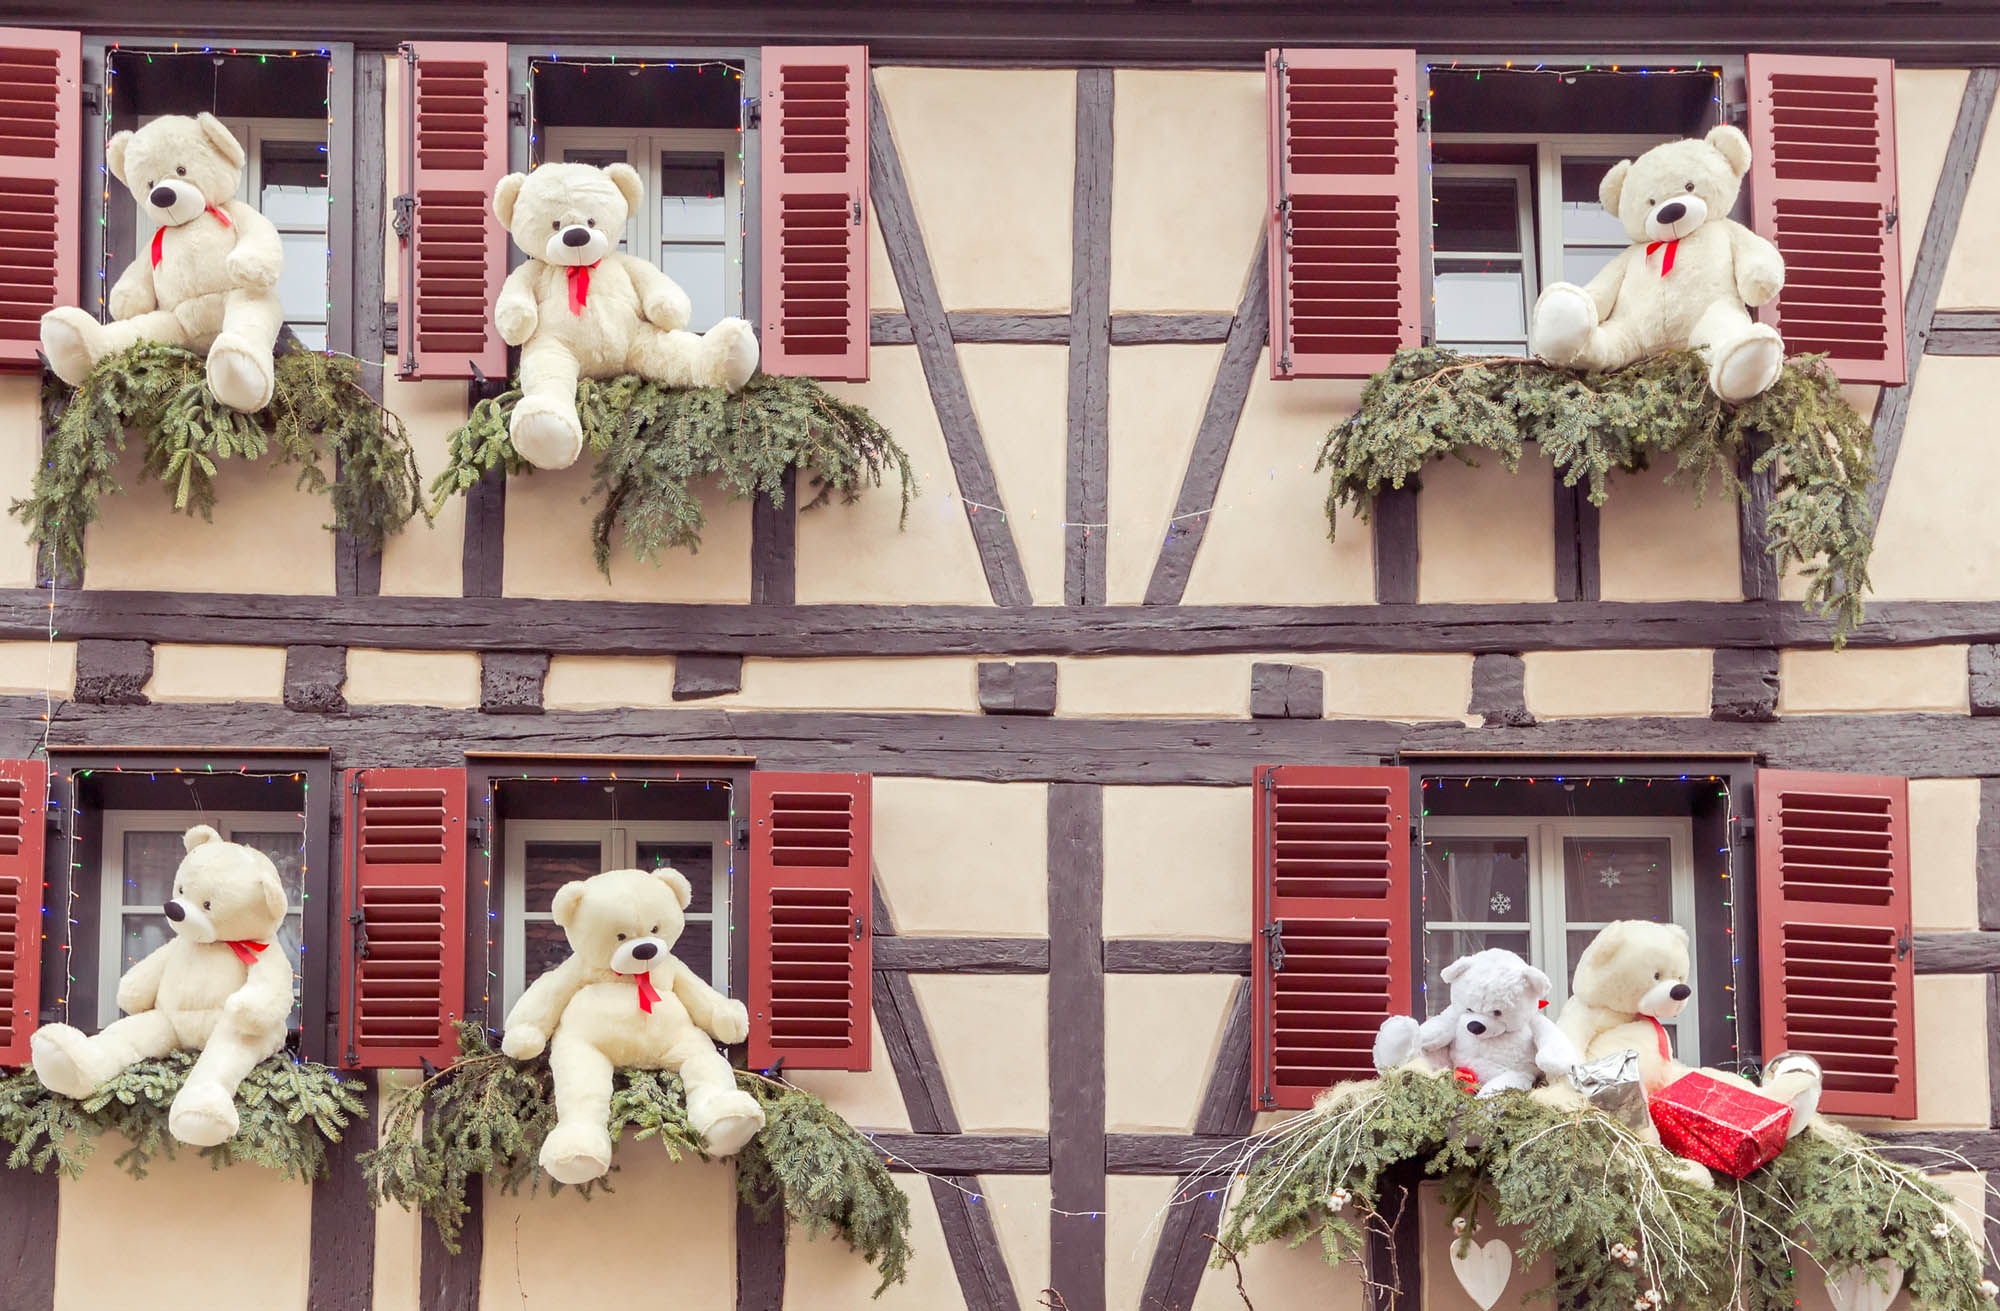 Noel_colmar_decorations_grand_rue_photo_AdobeStock_pillerss